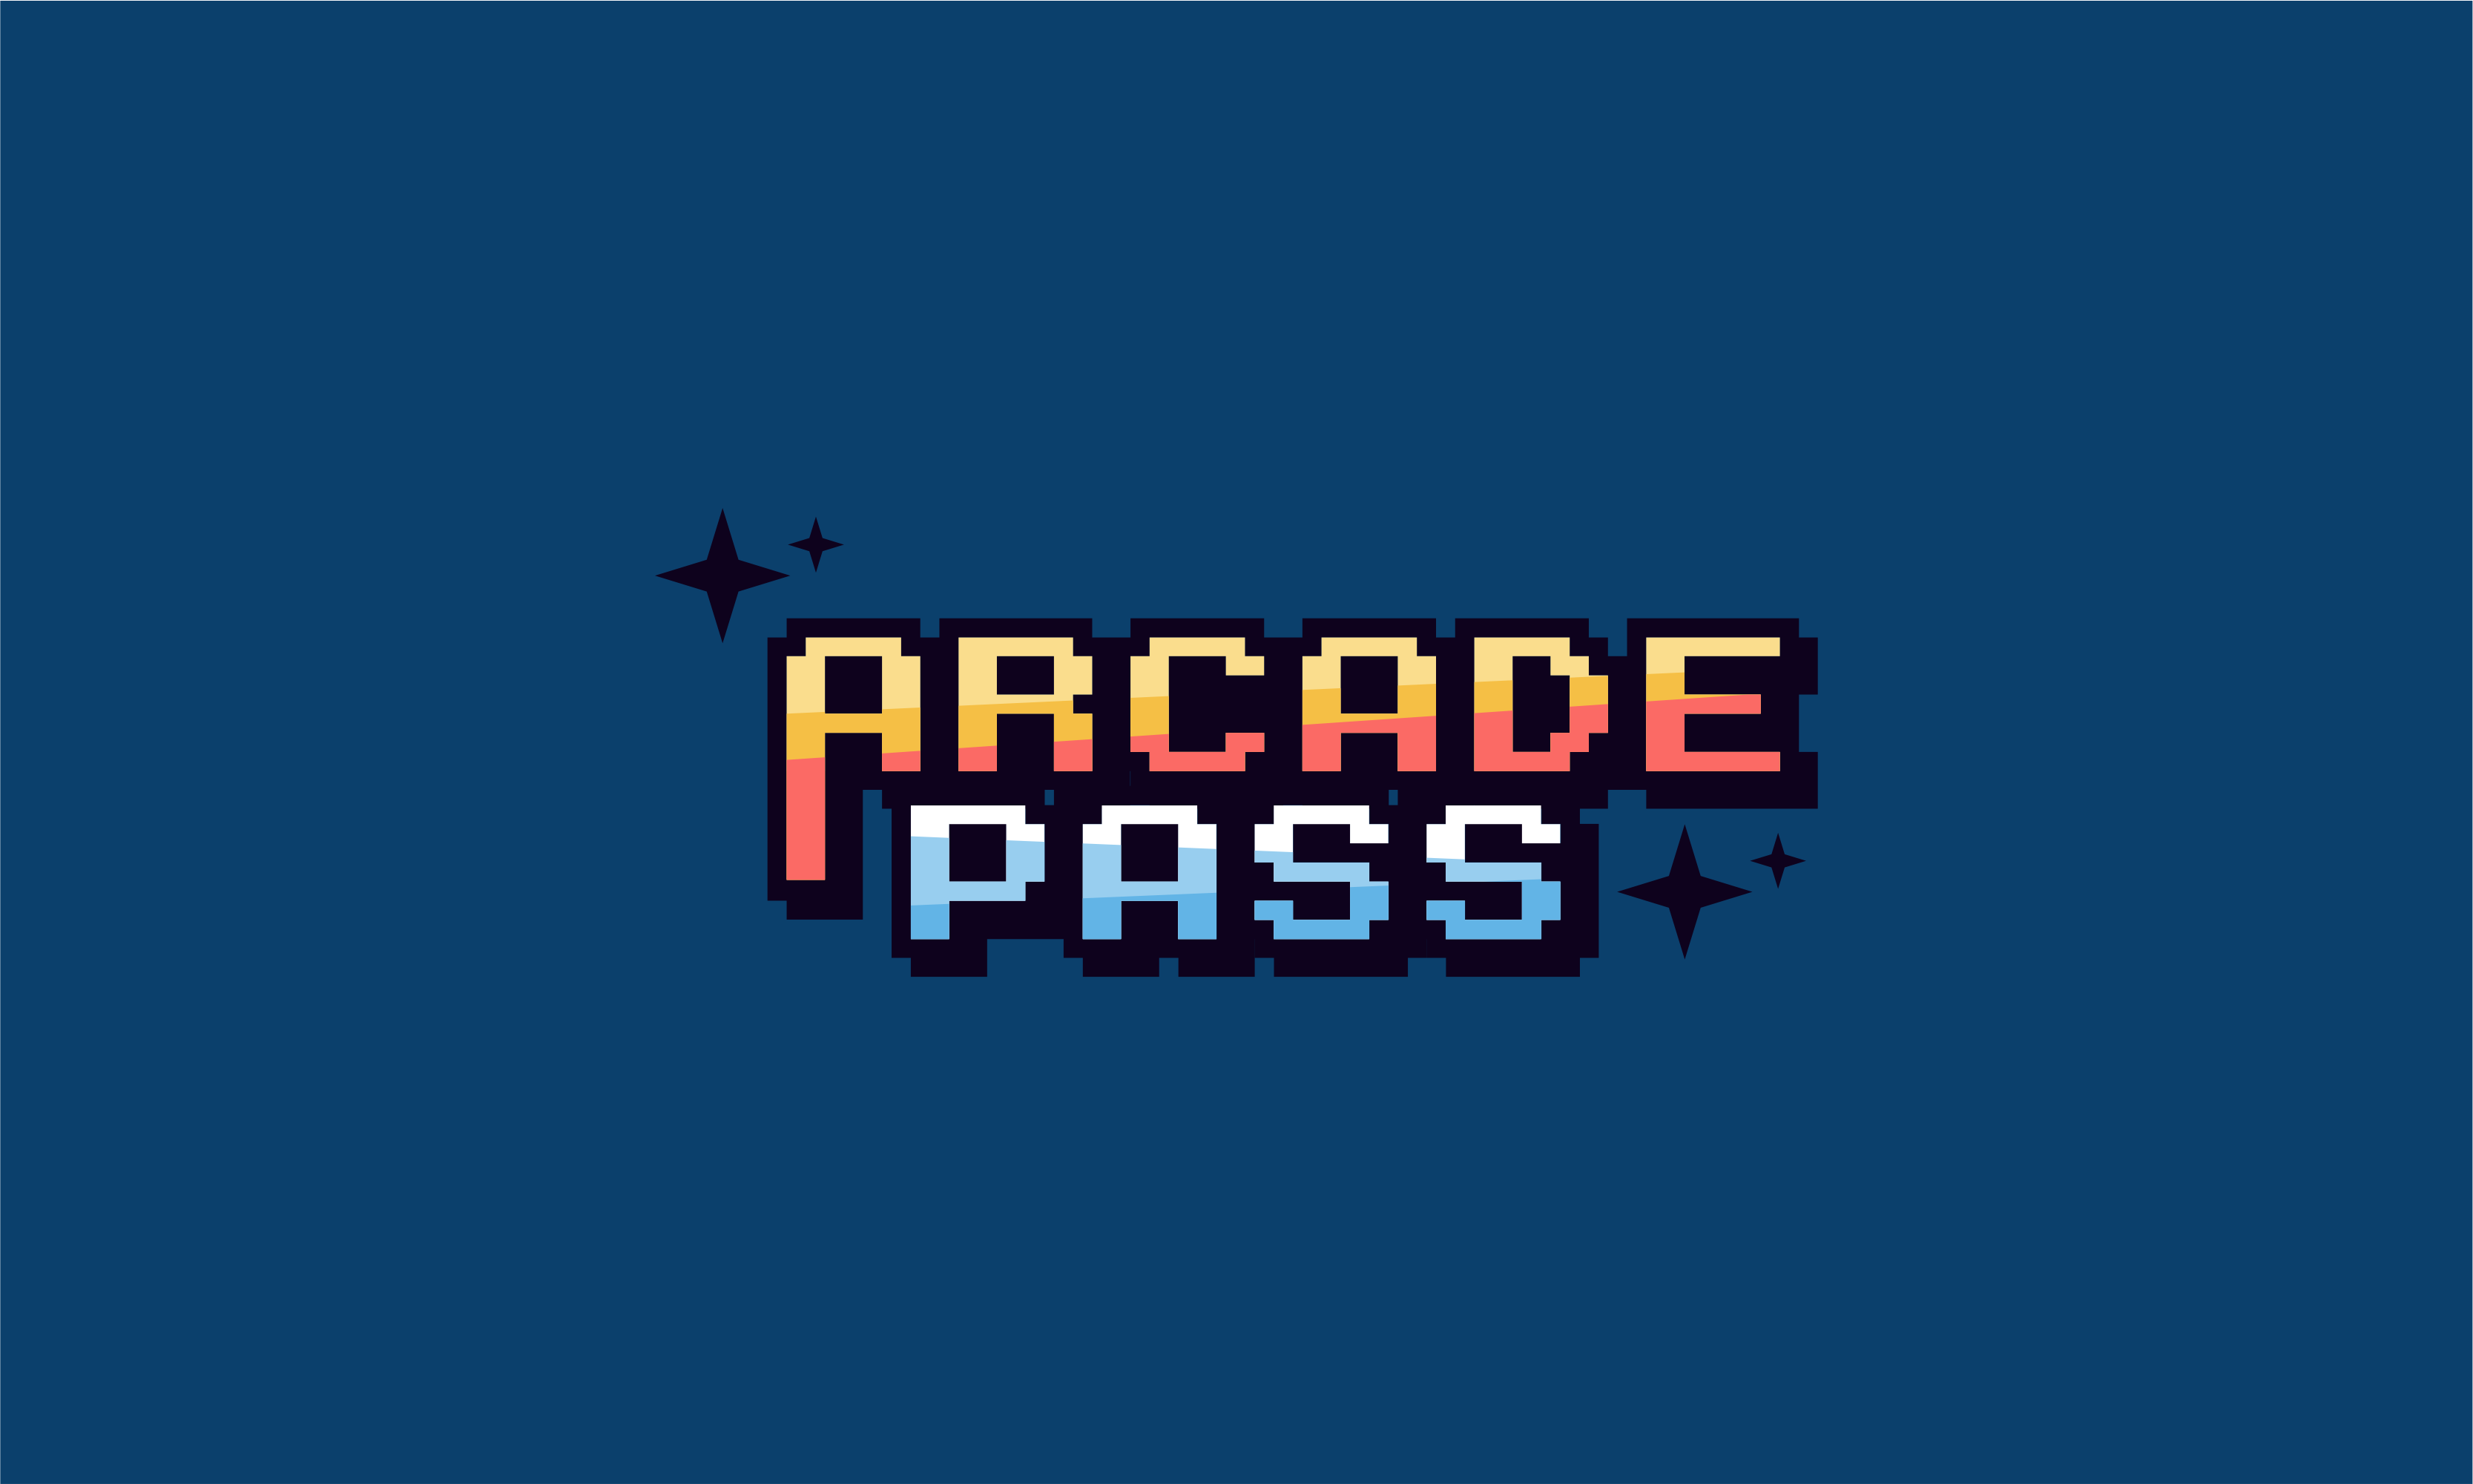 Arcadepass - Potential brand name for sale